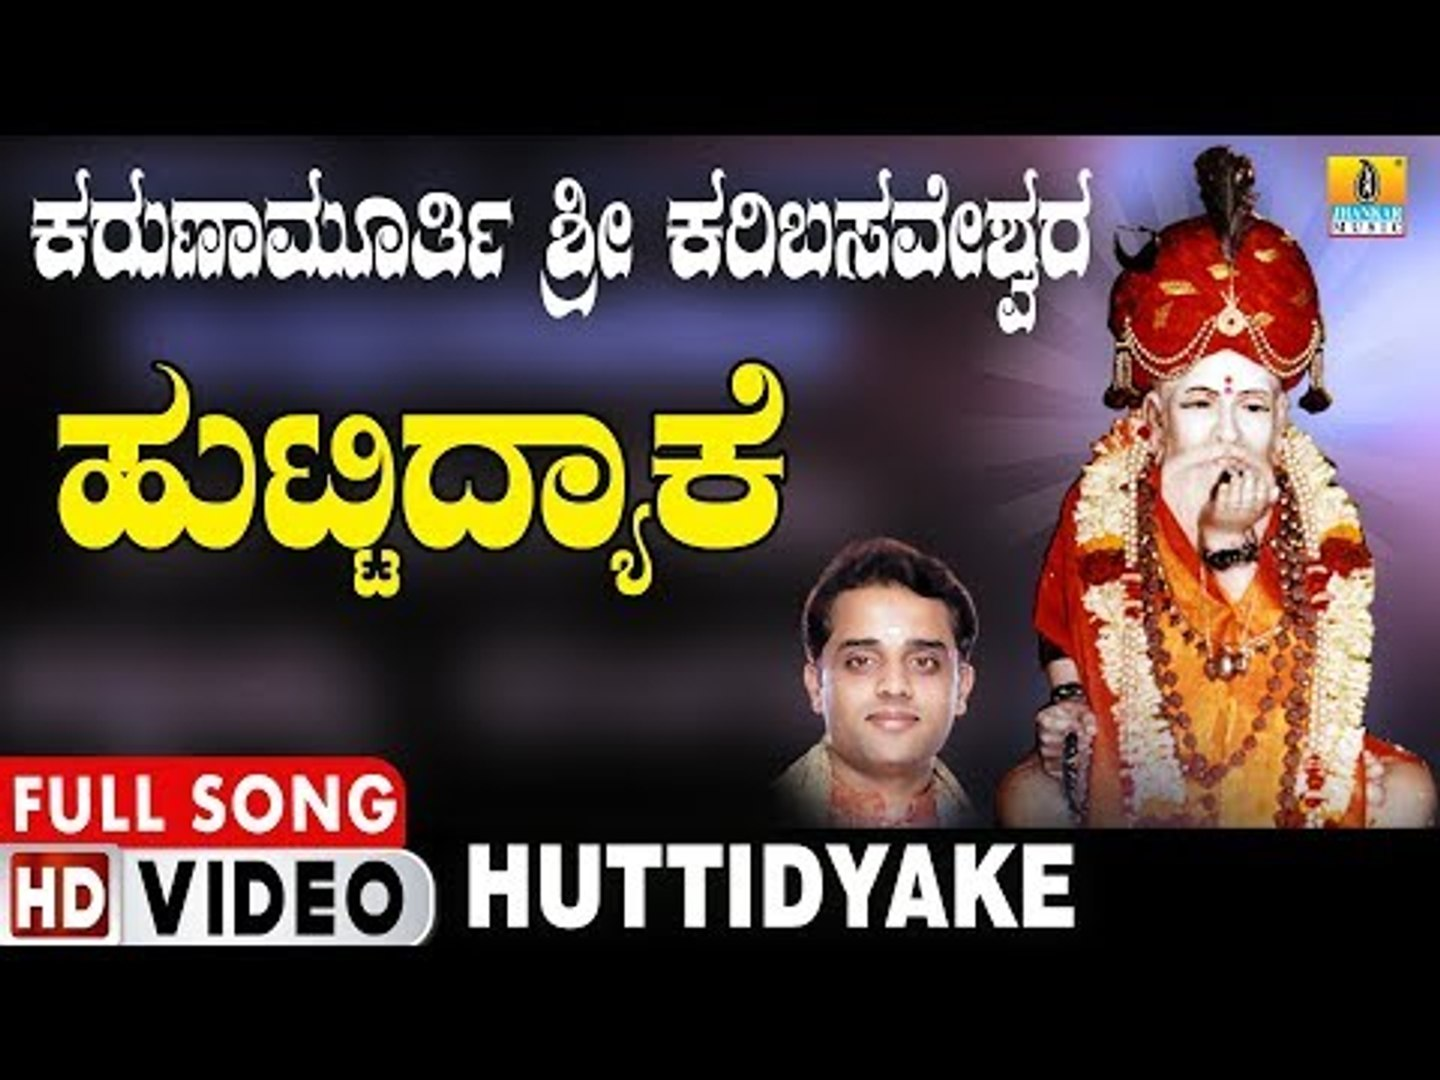 ಹುಟ್ಟಿದ್ಯಾಕೆ | Karunamurthi Sri Karibasaveshwara | Ajay Warriar | Kannada Devotional Video Songs